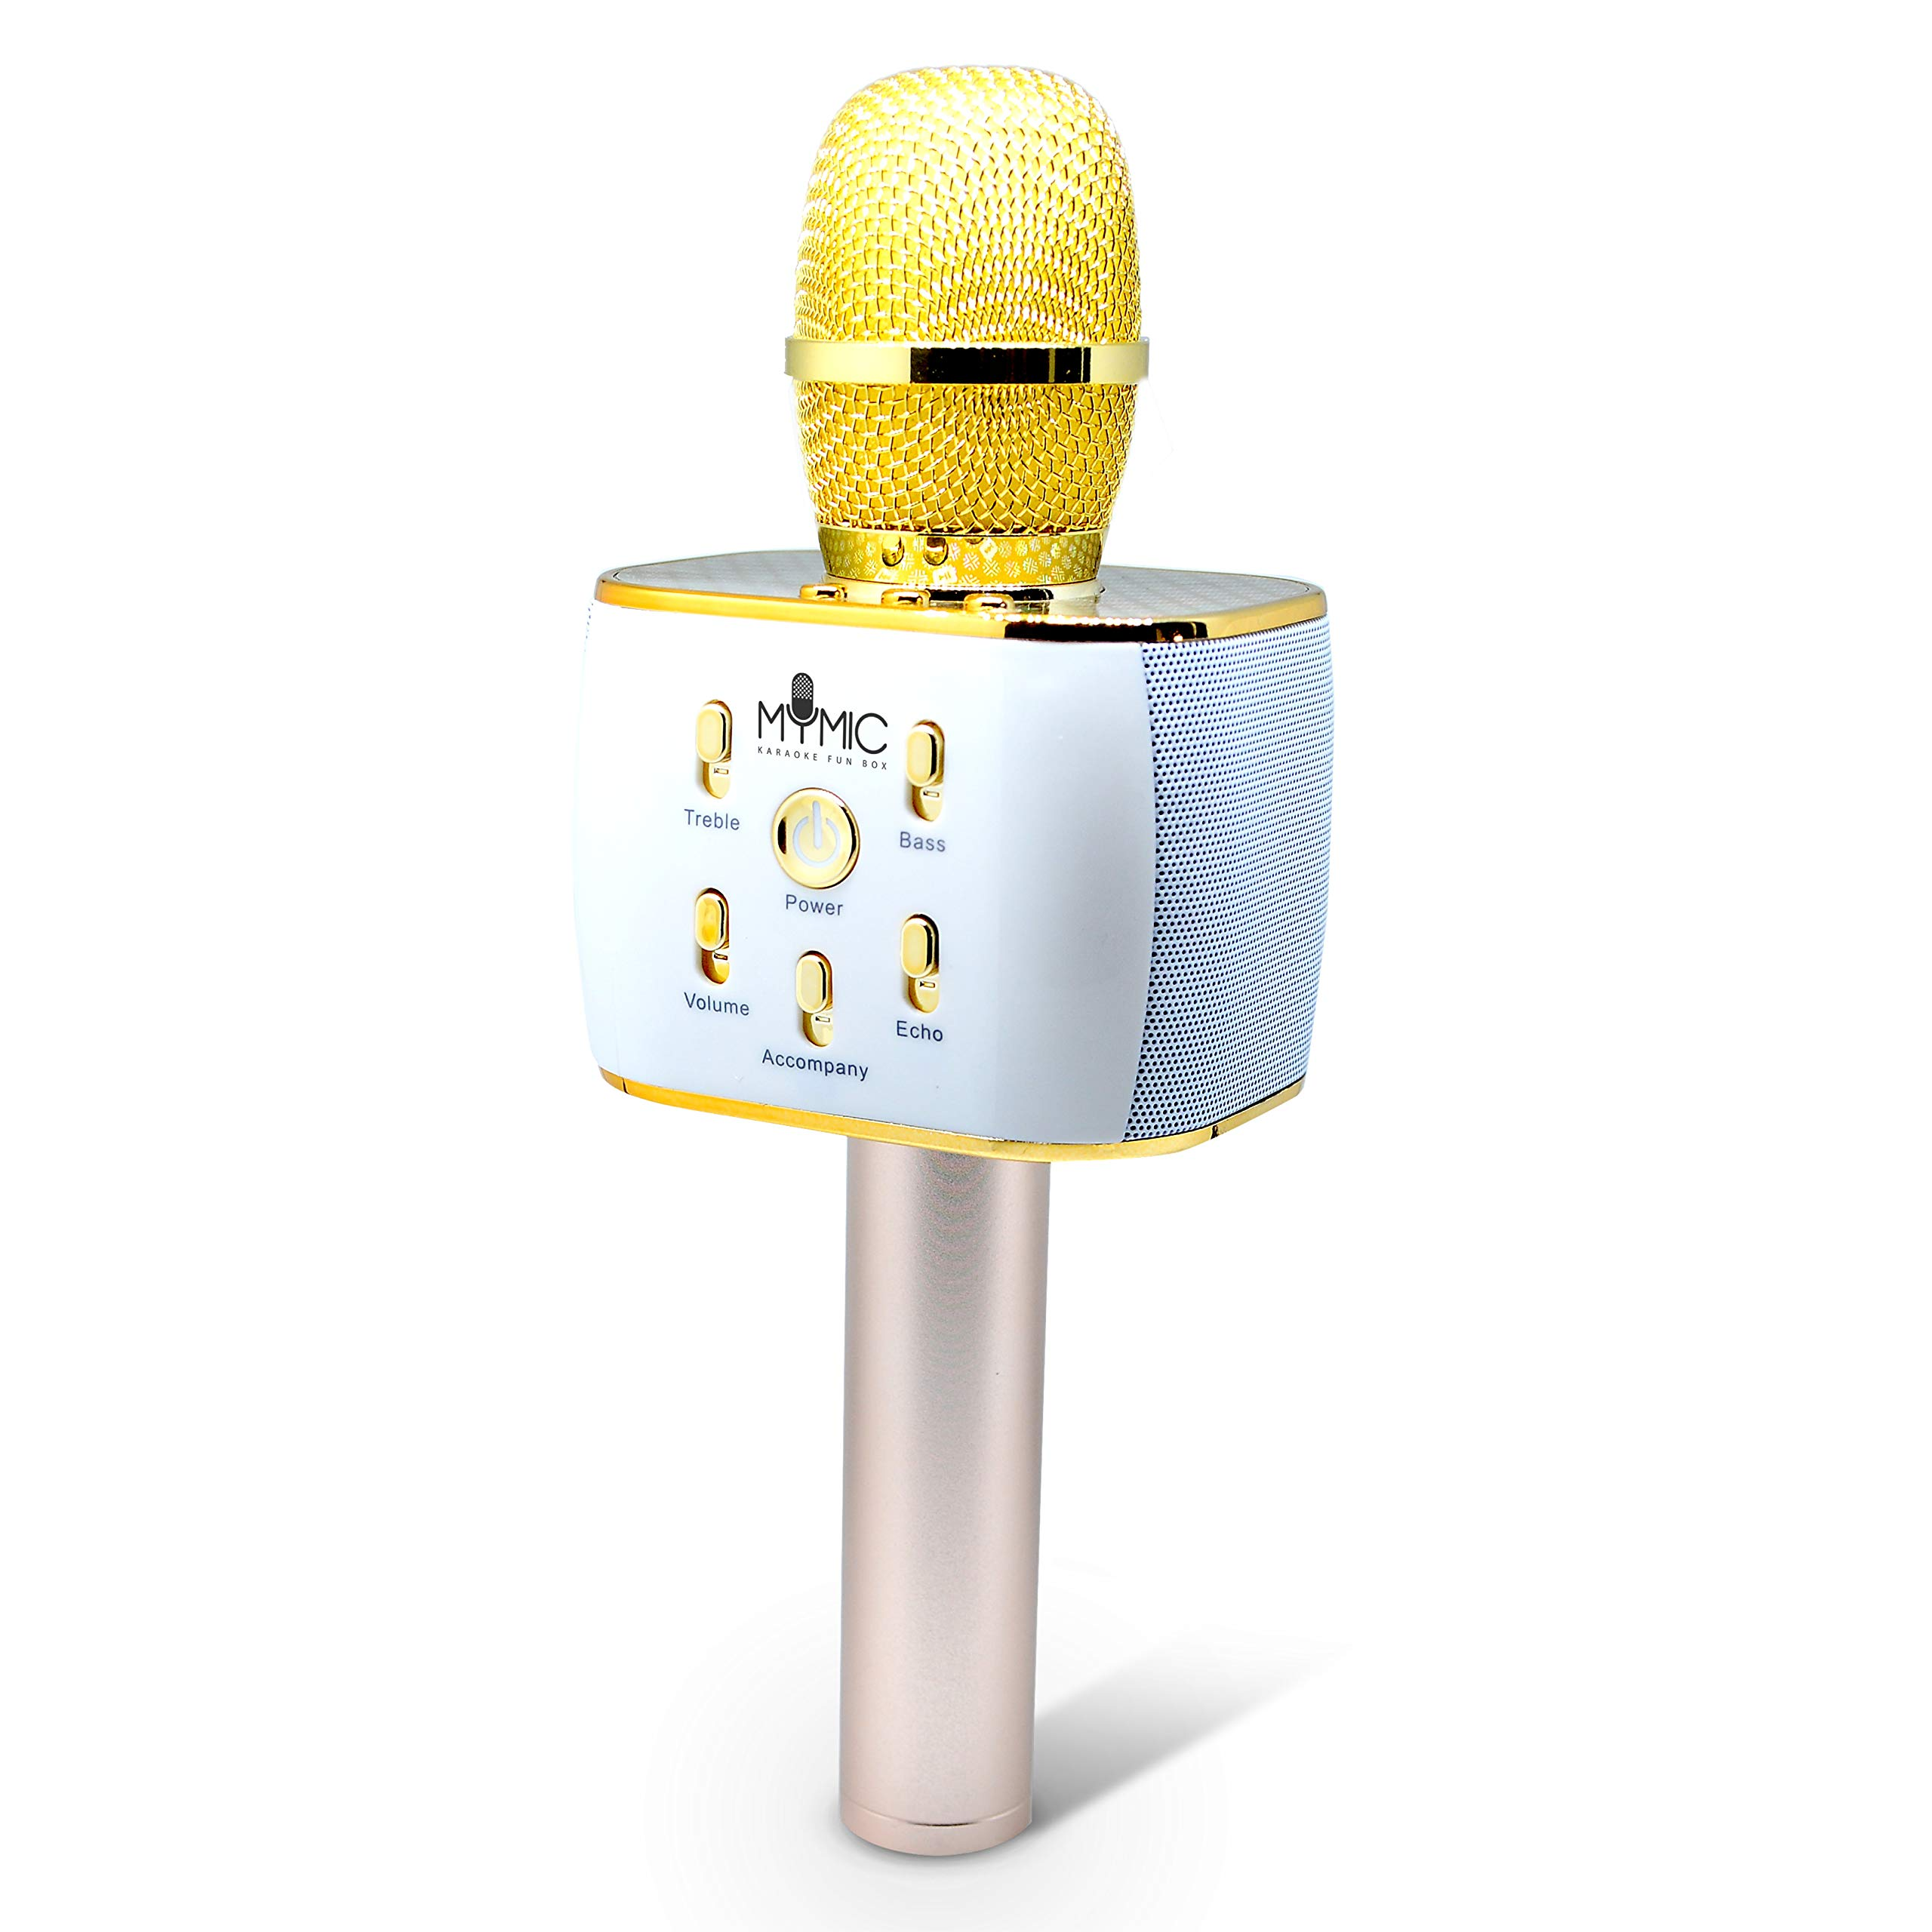 Wireless Bluetooth Karaoke Microphone, 3-in-1 Portable Handheld Karaoke Mic Home Party Birthday Gift Speaker Machine. For iPhone/iPad/Android/iOS/All Smartphone Devices (Gold)